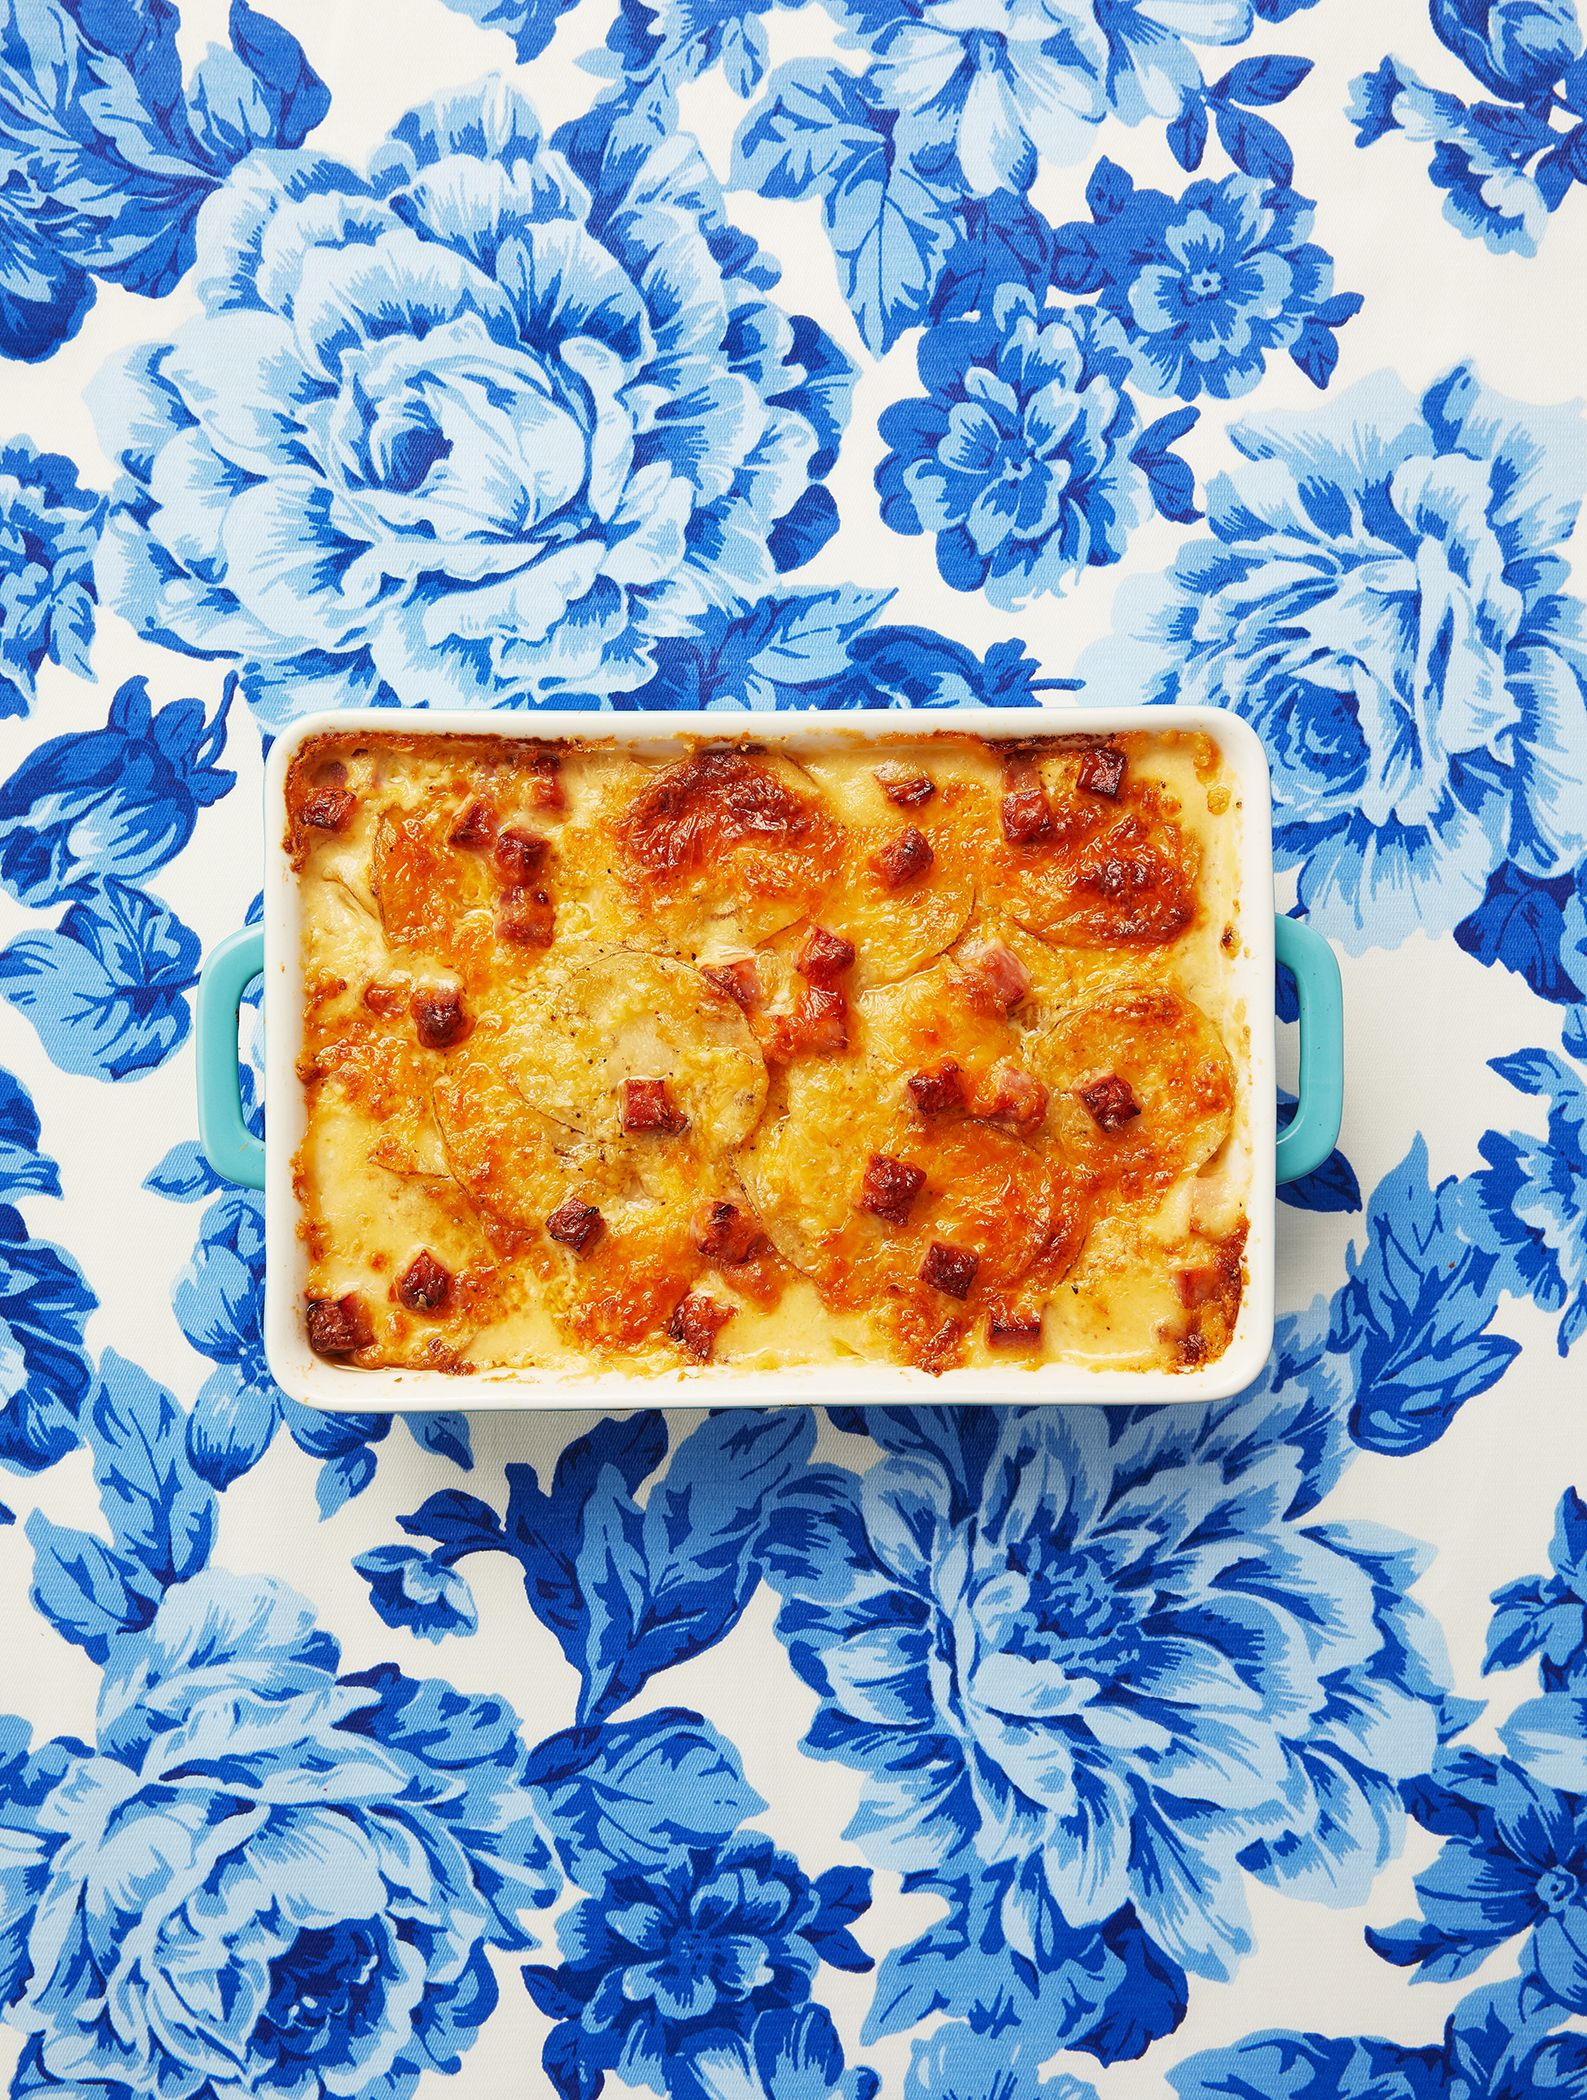 Best Scalloped Potatoes And Ham Recipe How To Make Scalloped Potatoes And Ham